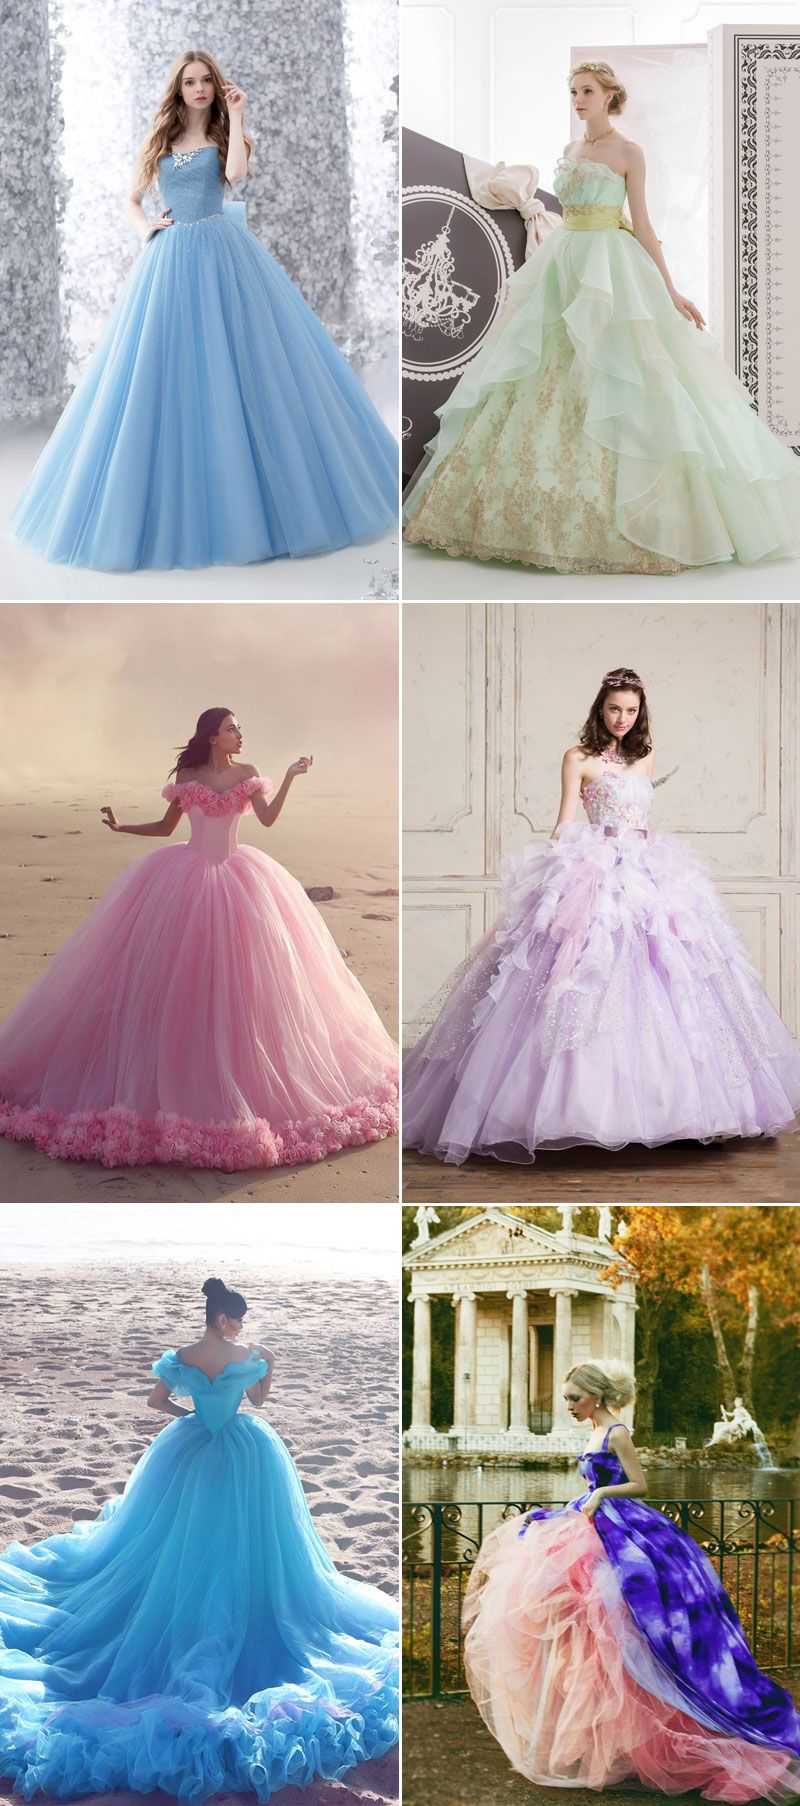 b4d528cc1f4d1 27 Princess-worthy Ball Gowns That Define Regal Elegance | Gorgeous ...